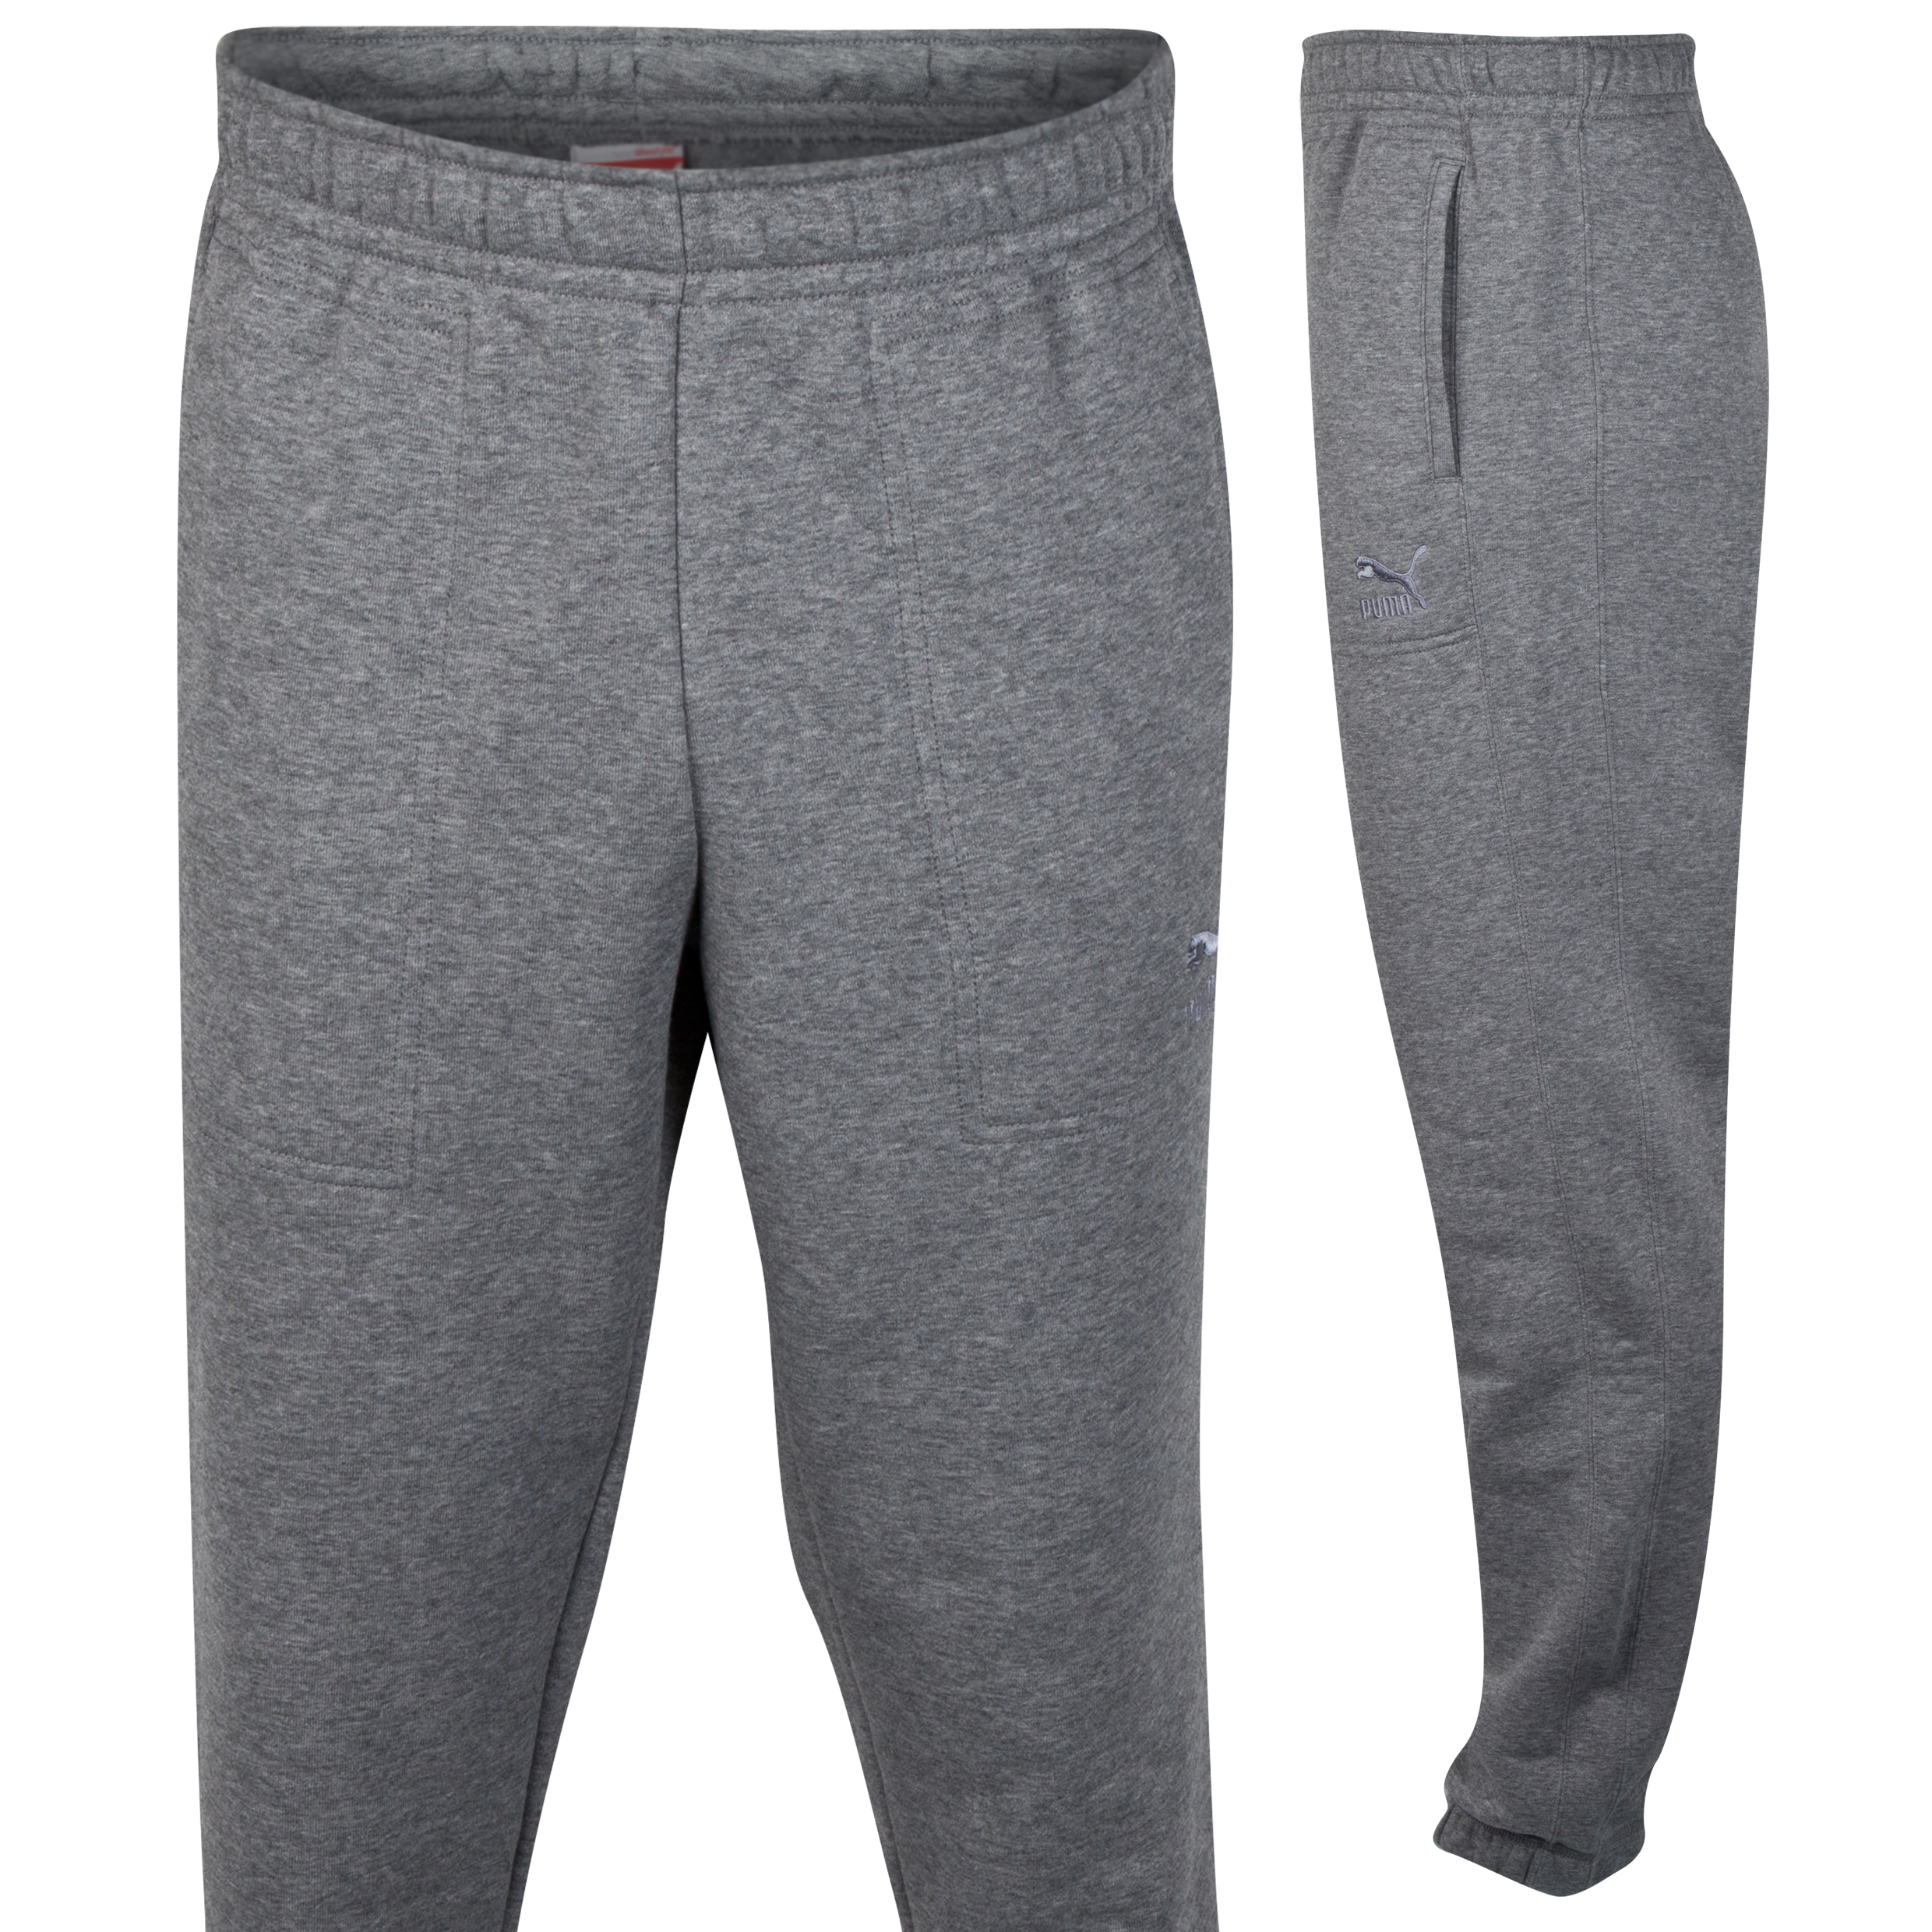 Puma Sweat Pants - Medium Gray Heather